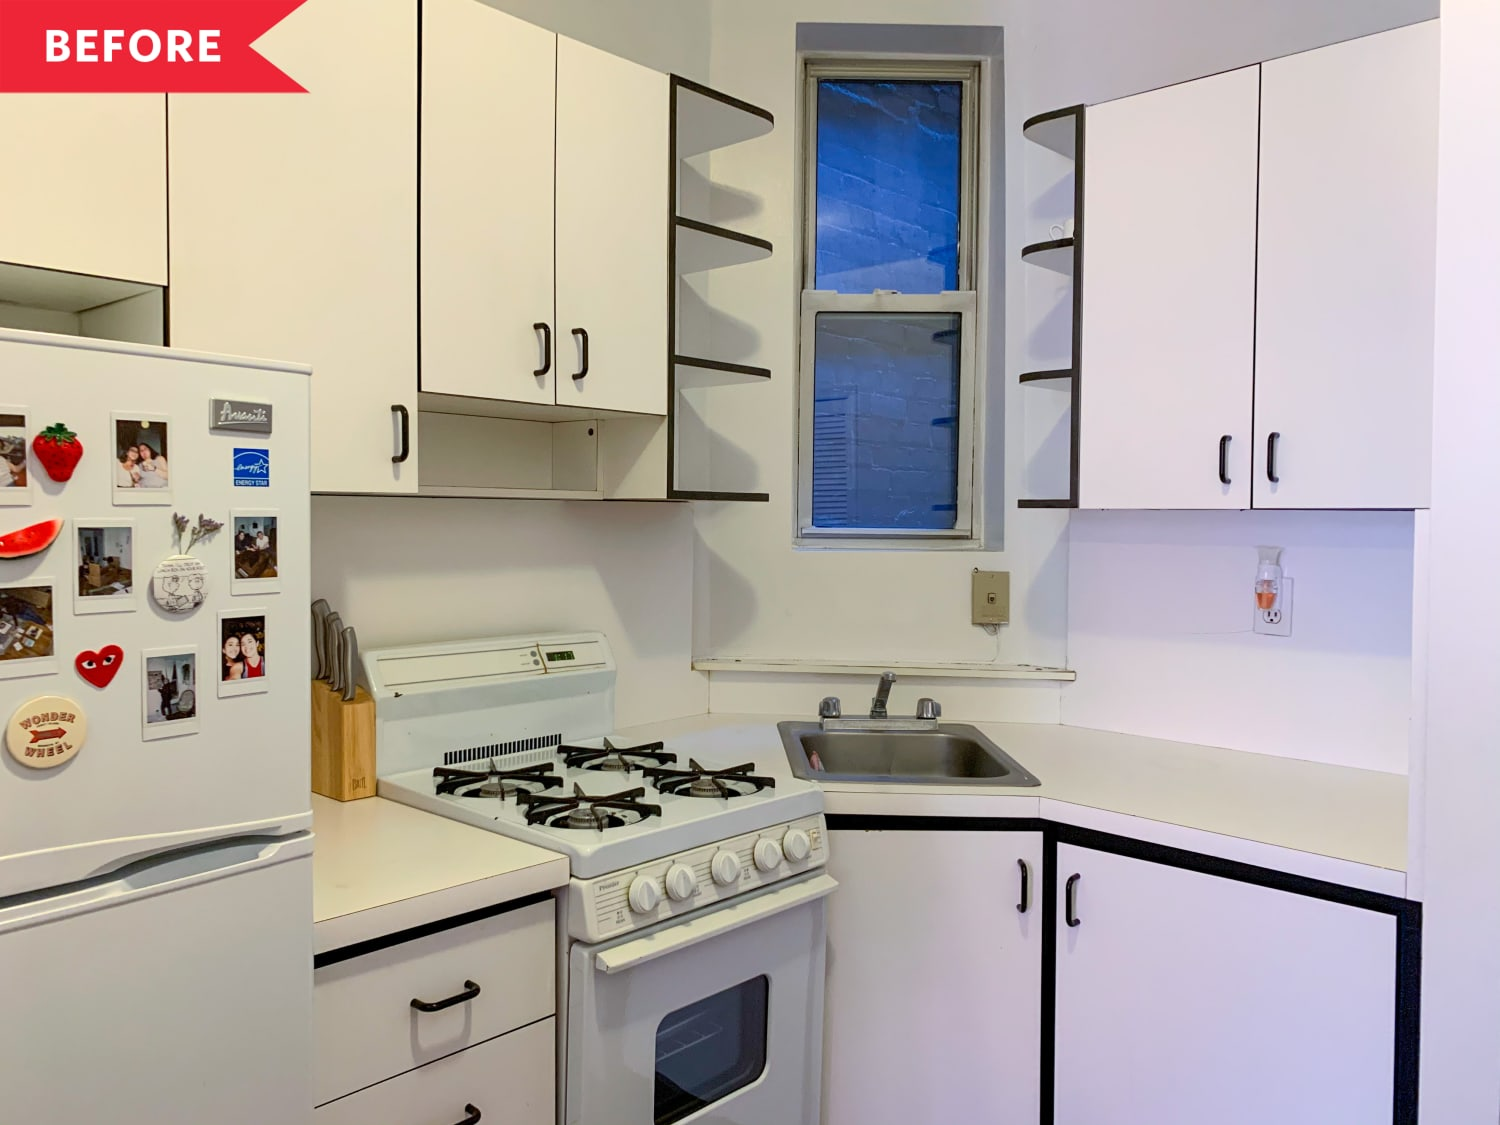 Before & After: This $100 Rental Kitchen Redo Has a Million-Dollar Personality